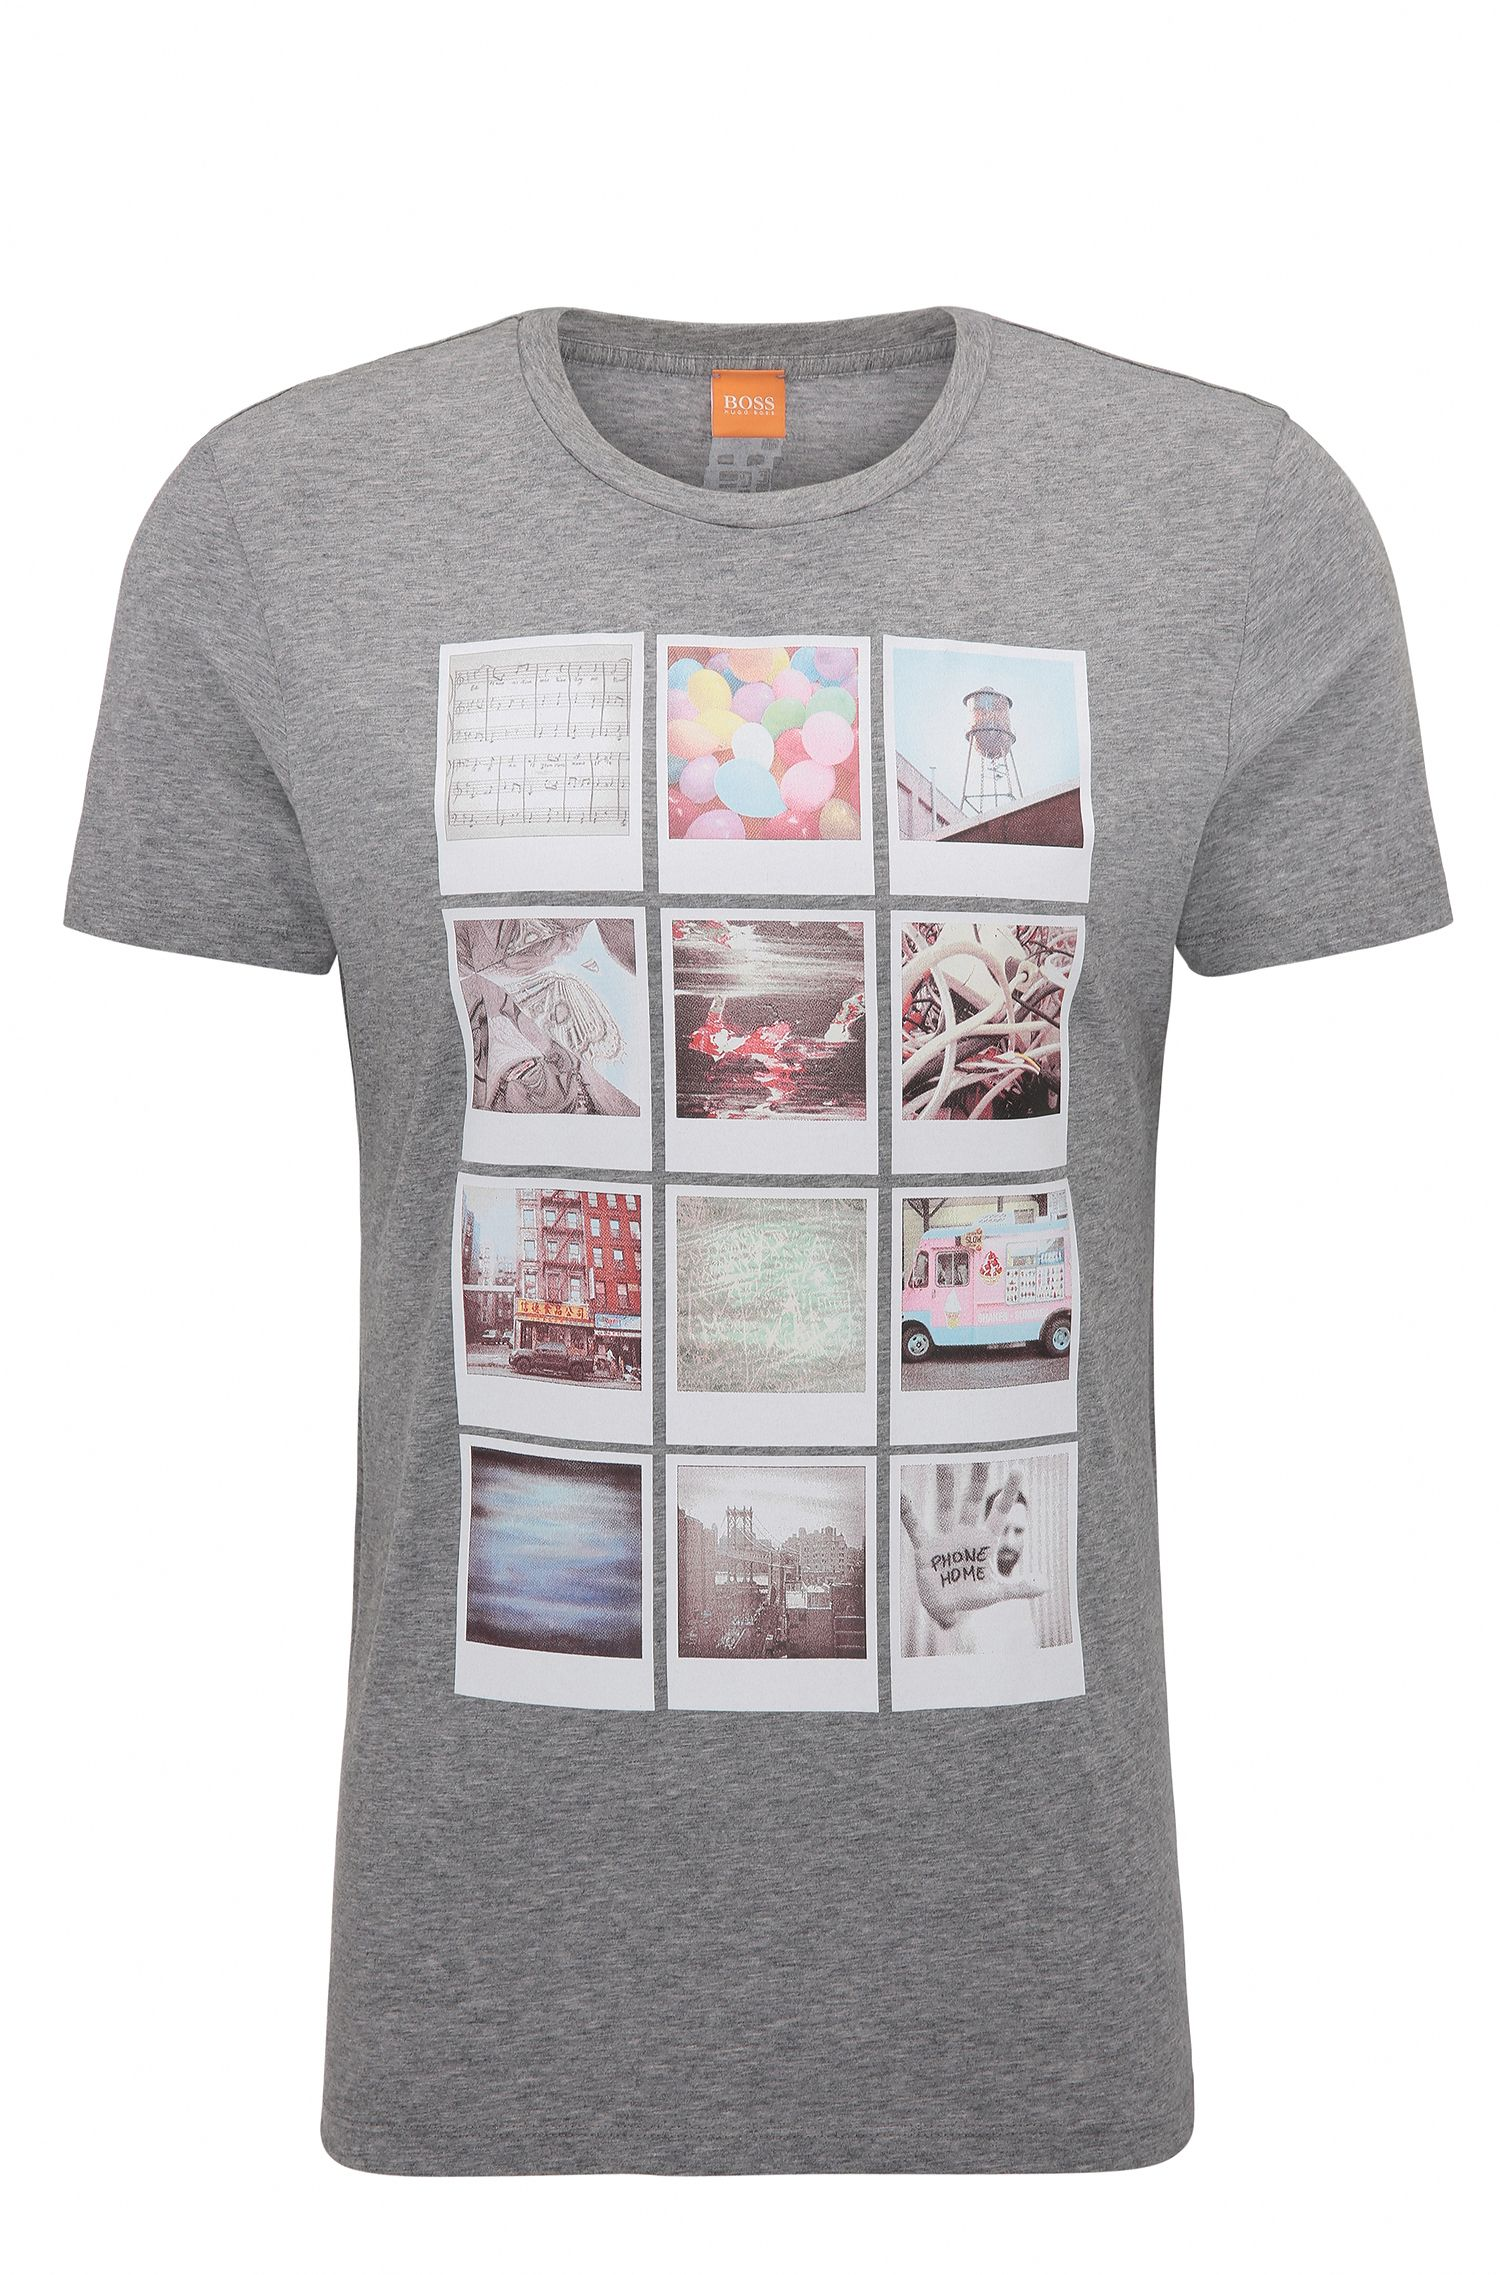 T-shirt Regular Fit en coton à imprimé de style polaroïd